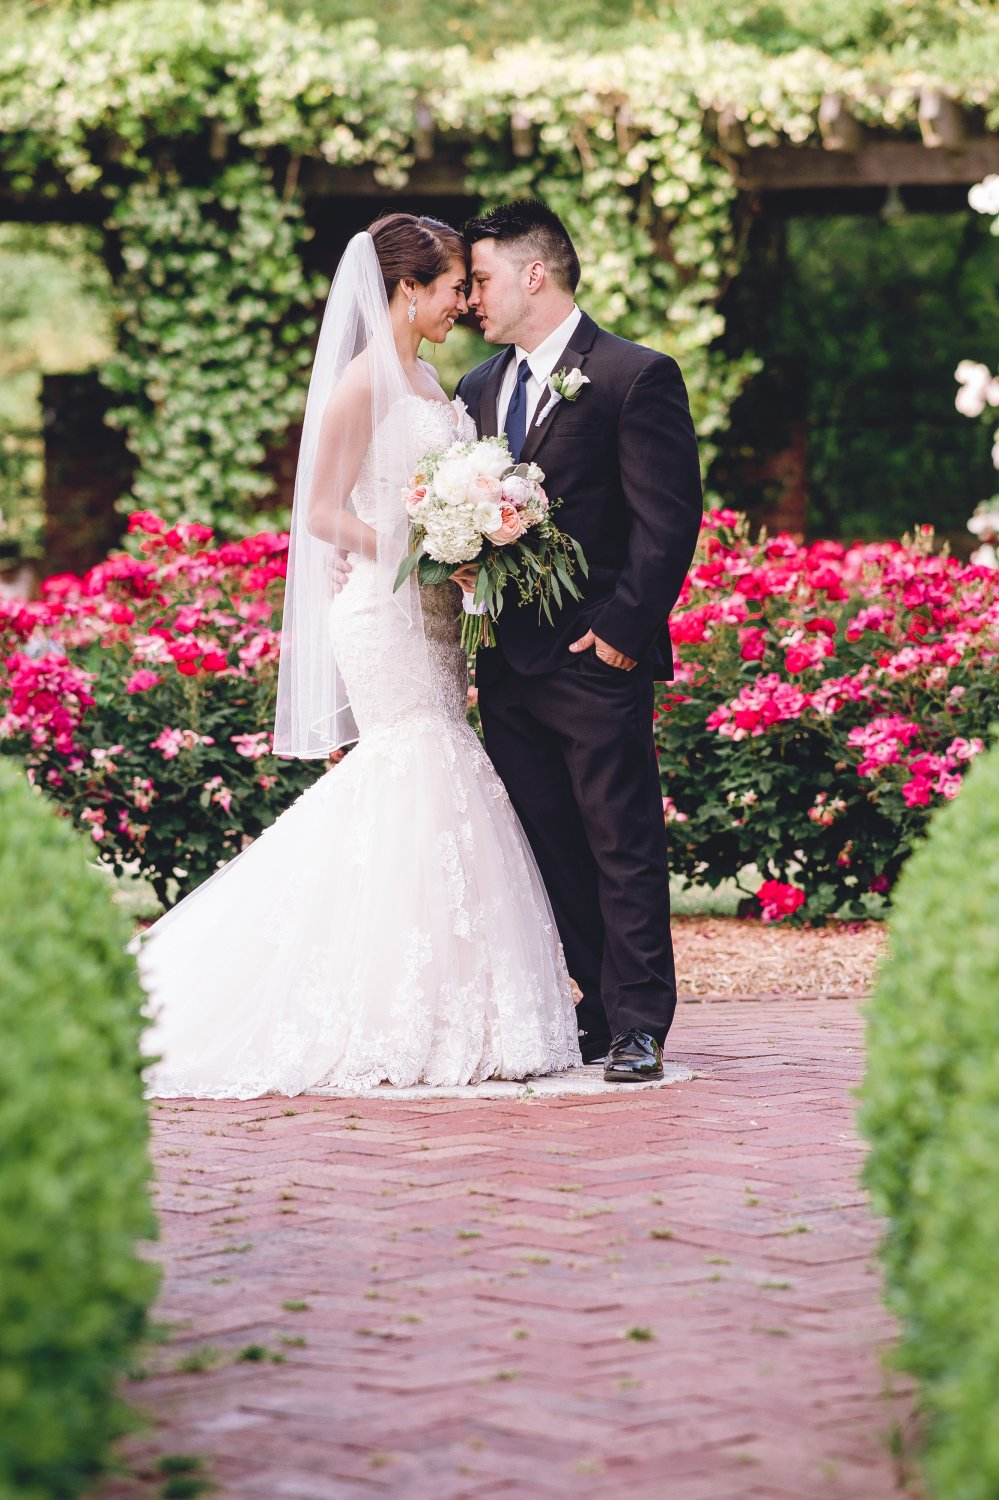 View More: http://sharonelizabethphotography.pass.us/shanleyandraymondwedding